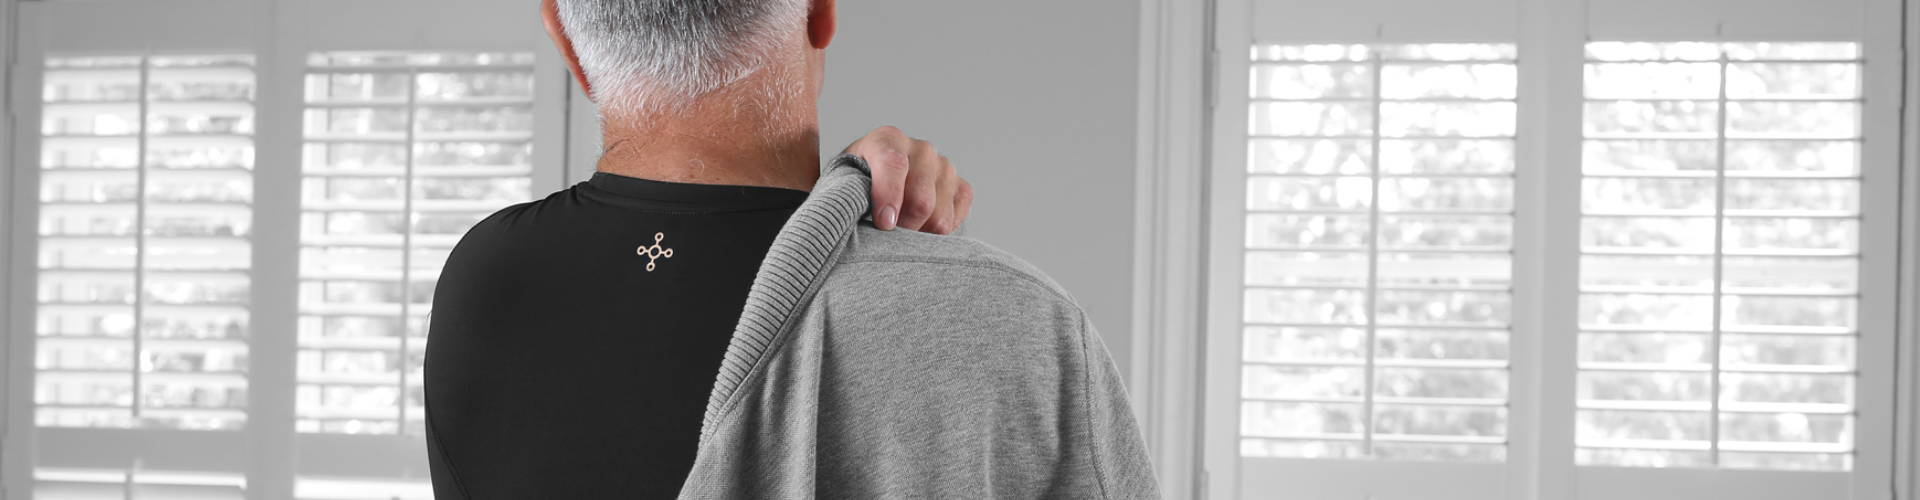 Man wearing a Tommie Copper® shoulder support shirt